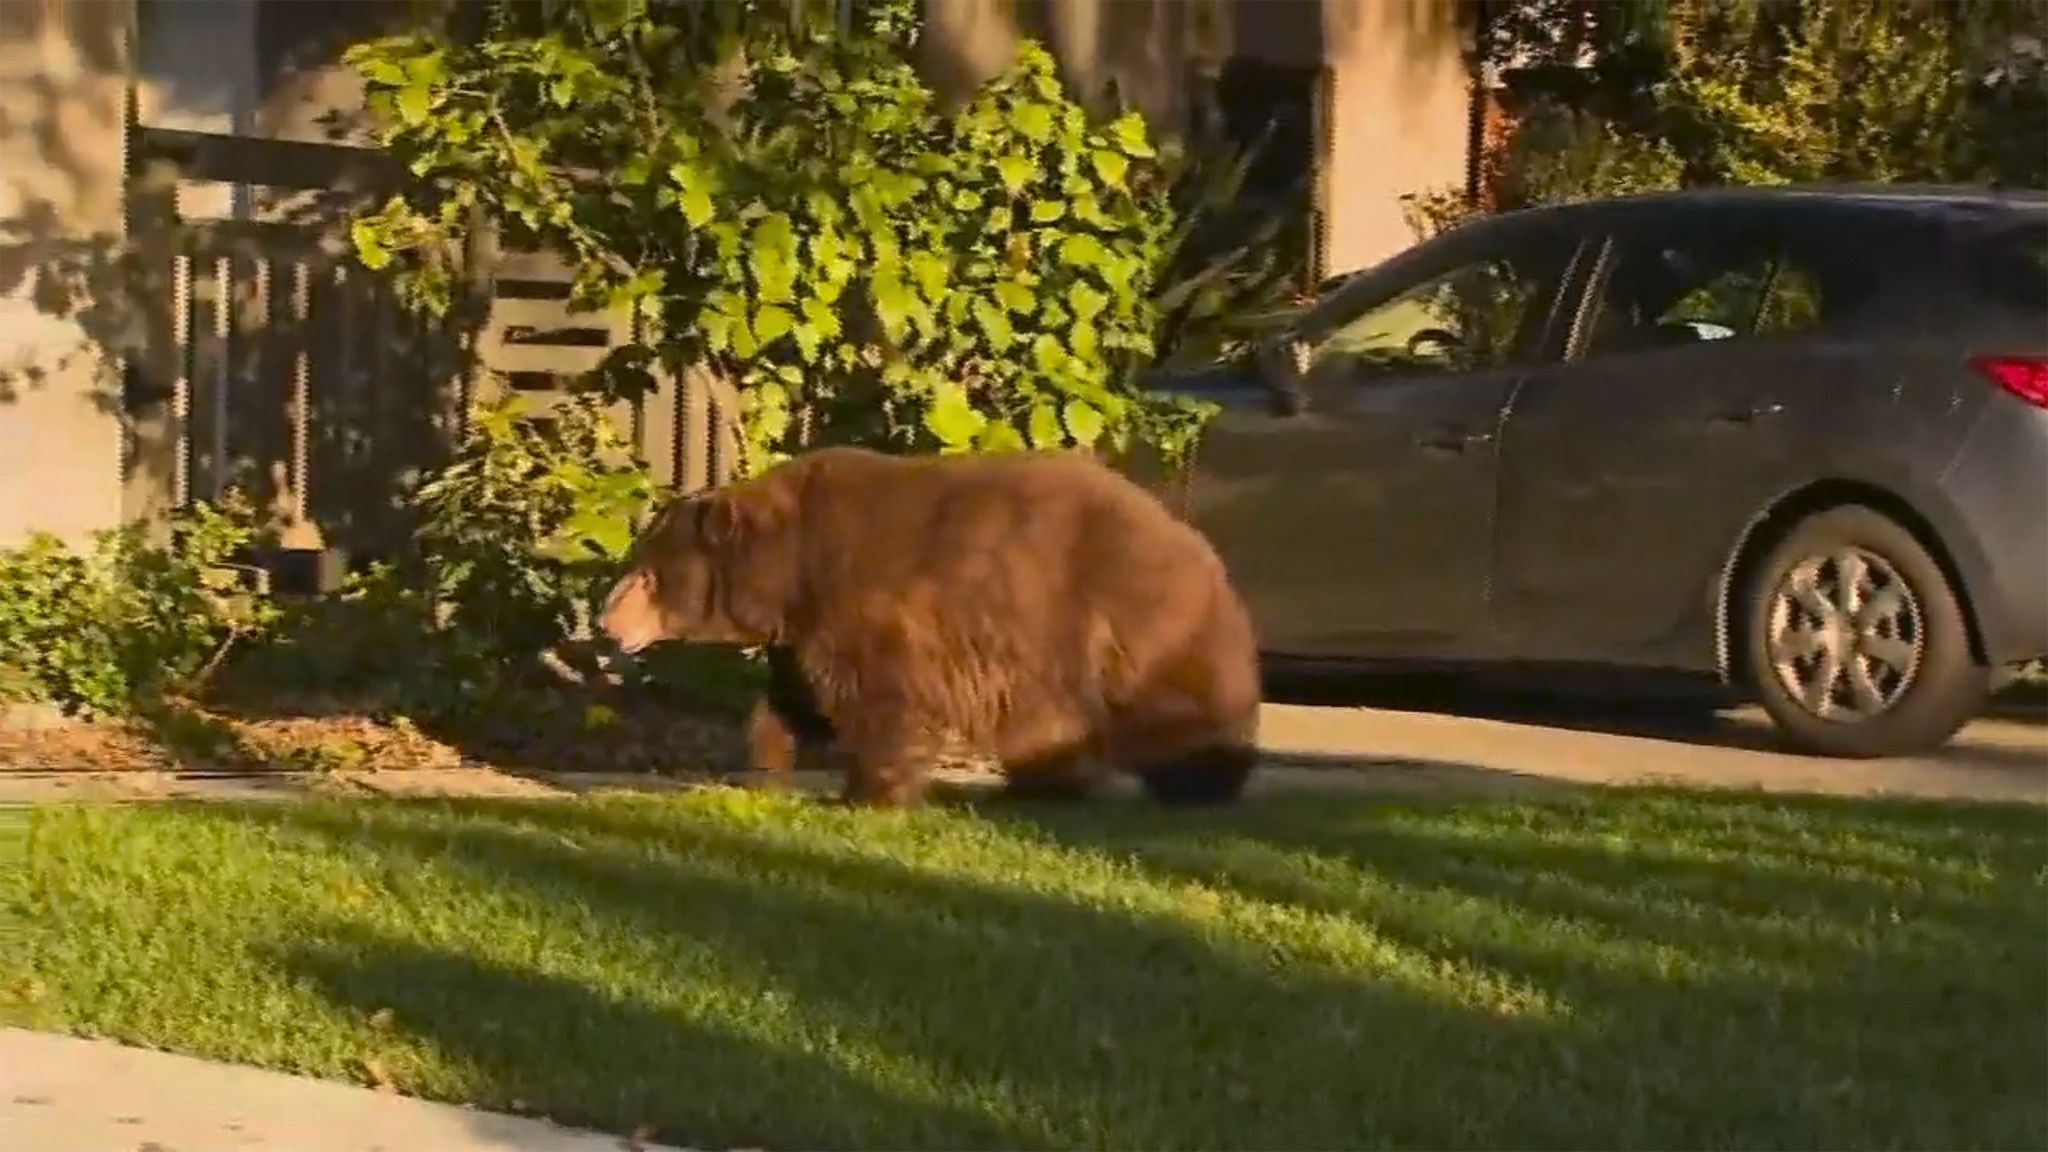 Big bear casually strolls through L.A. suburb looking for food, gets tranquilized and taken to forest